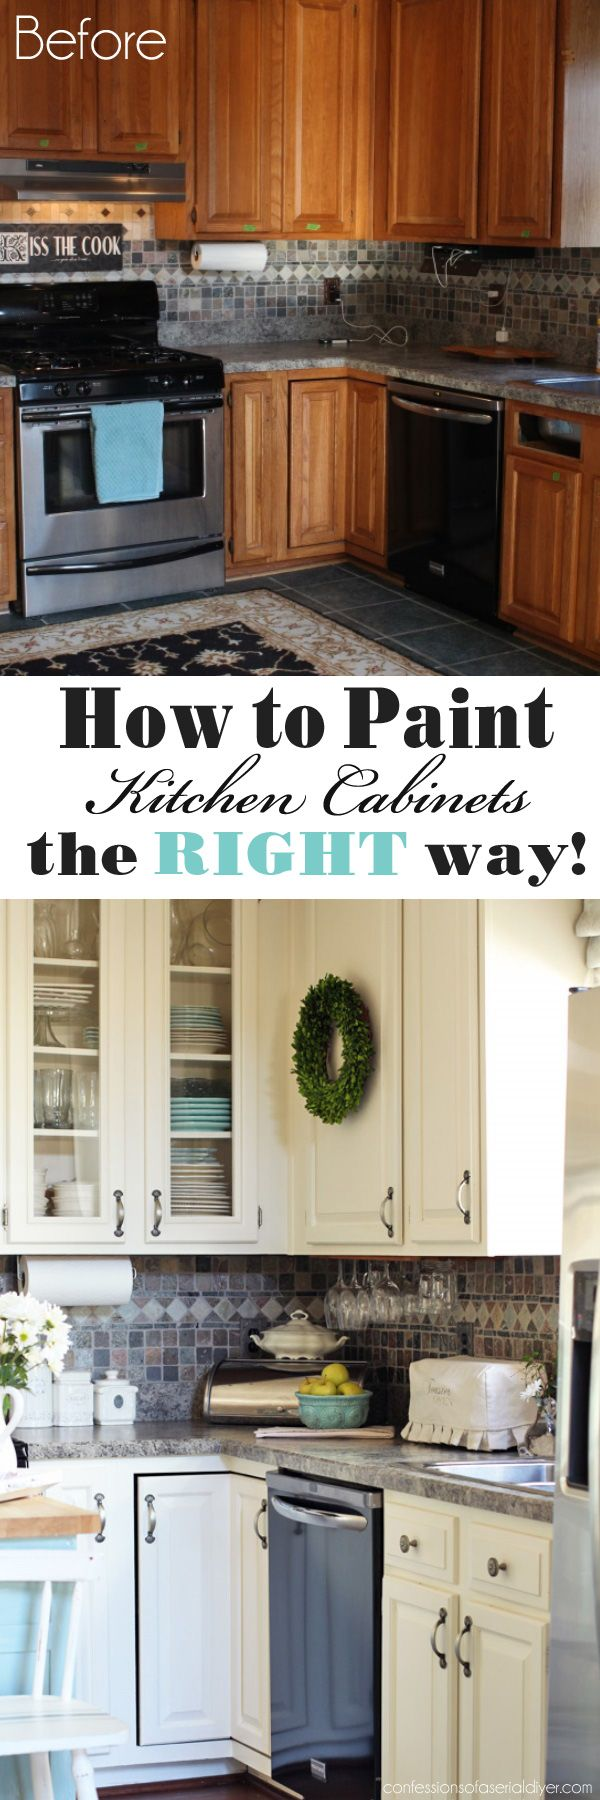 Best 25+ Cabinet paint colors ideas on Pinterest | Kitchen ...